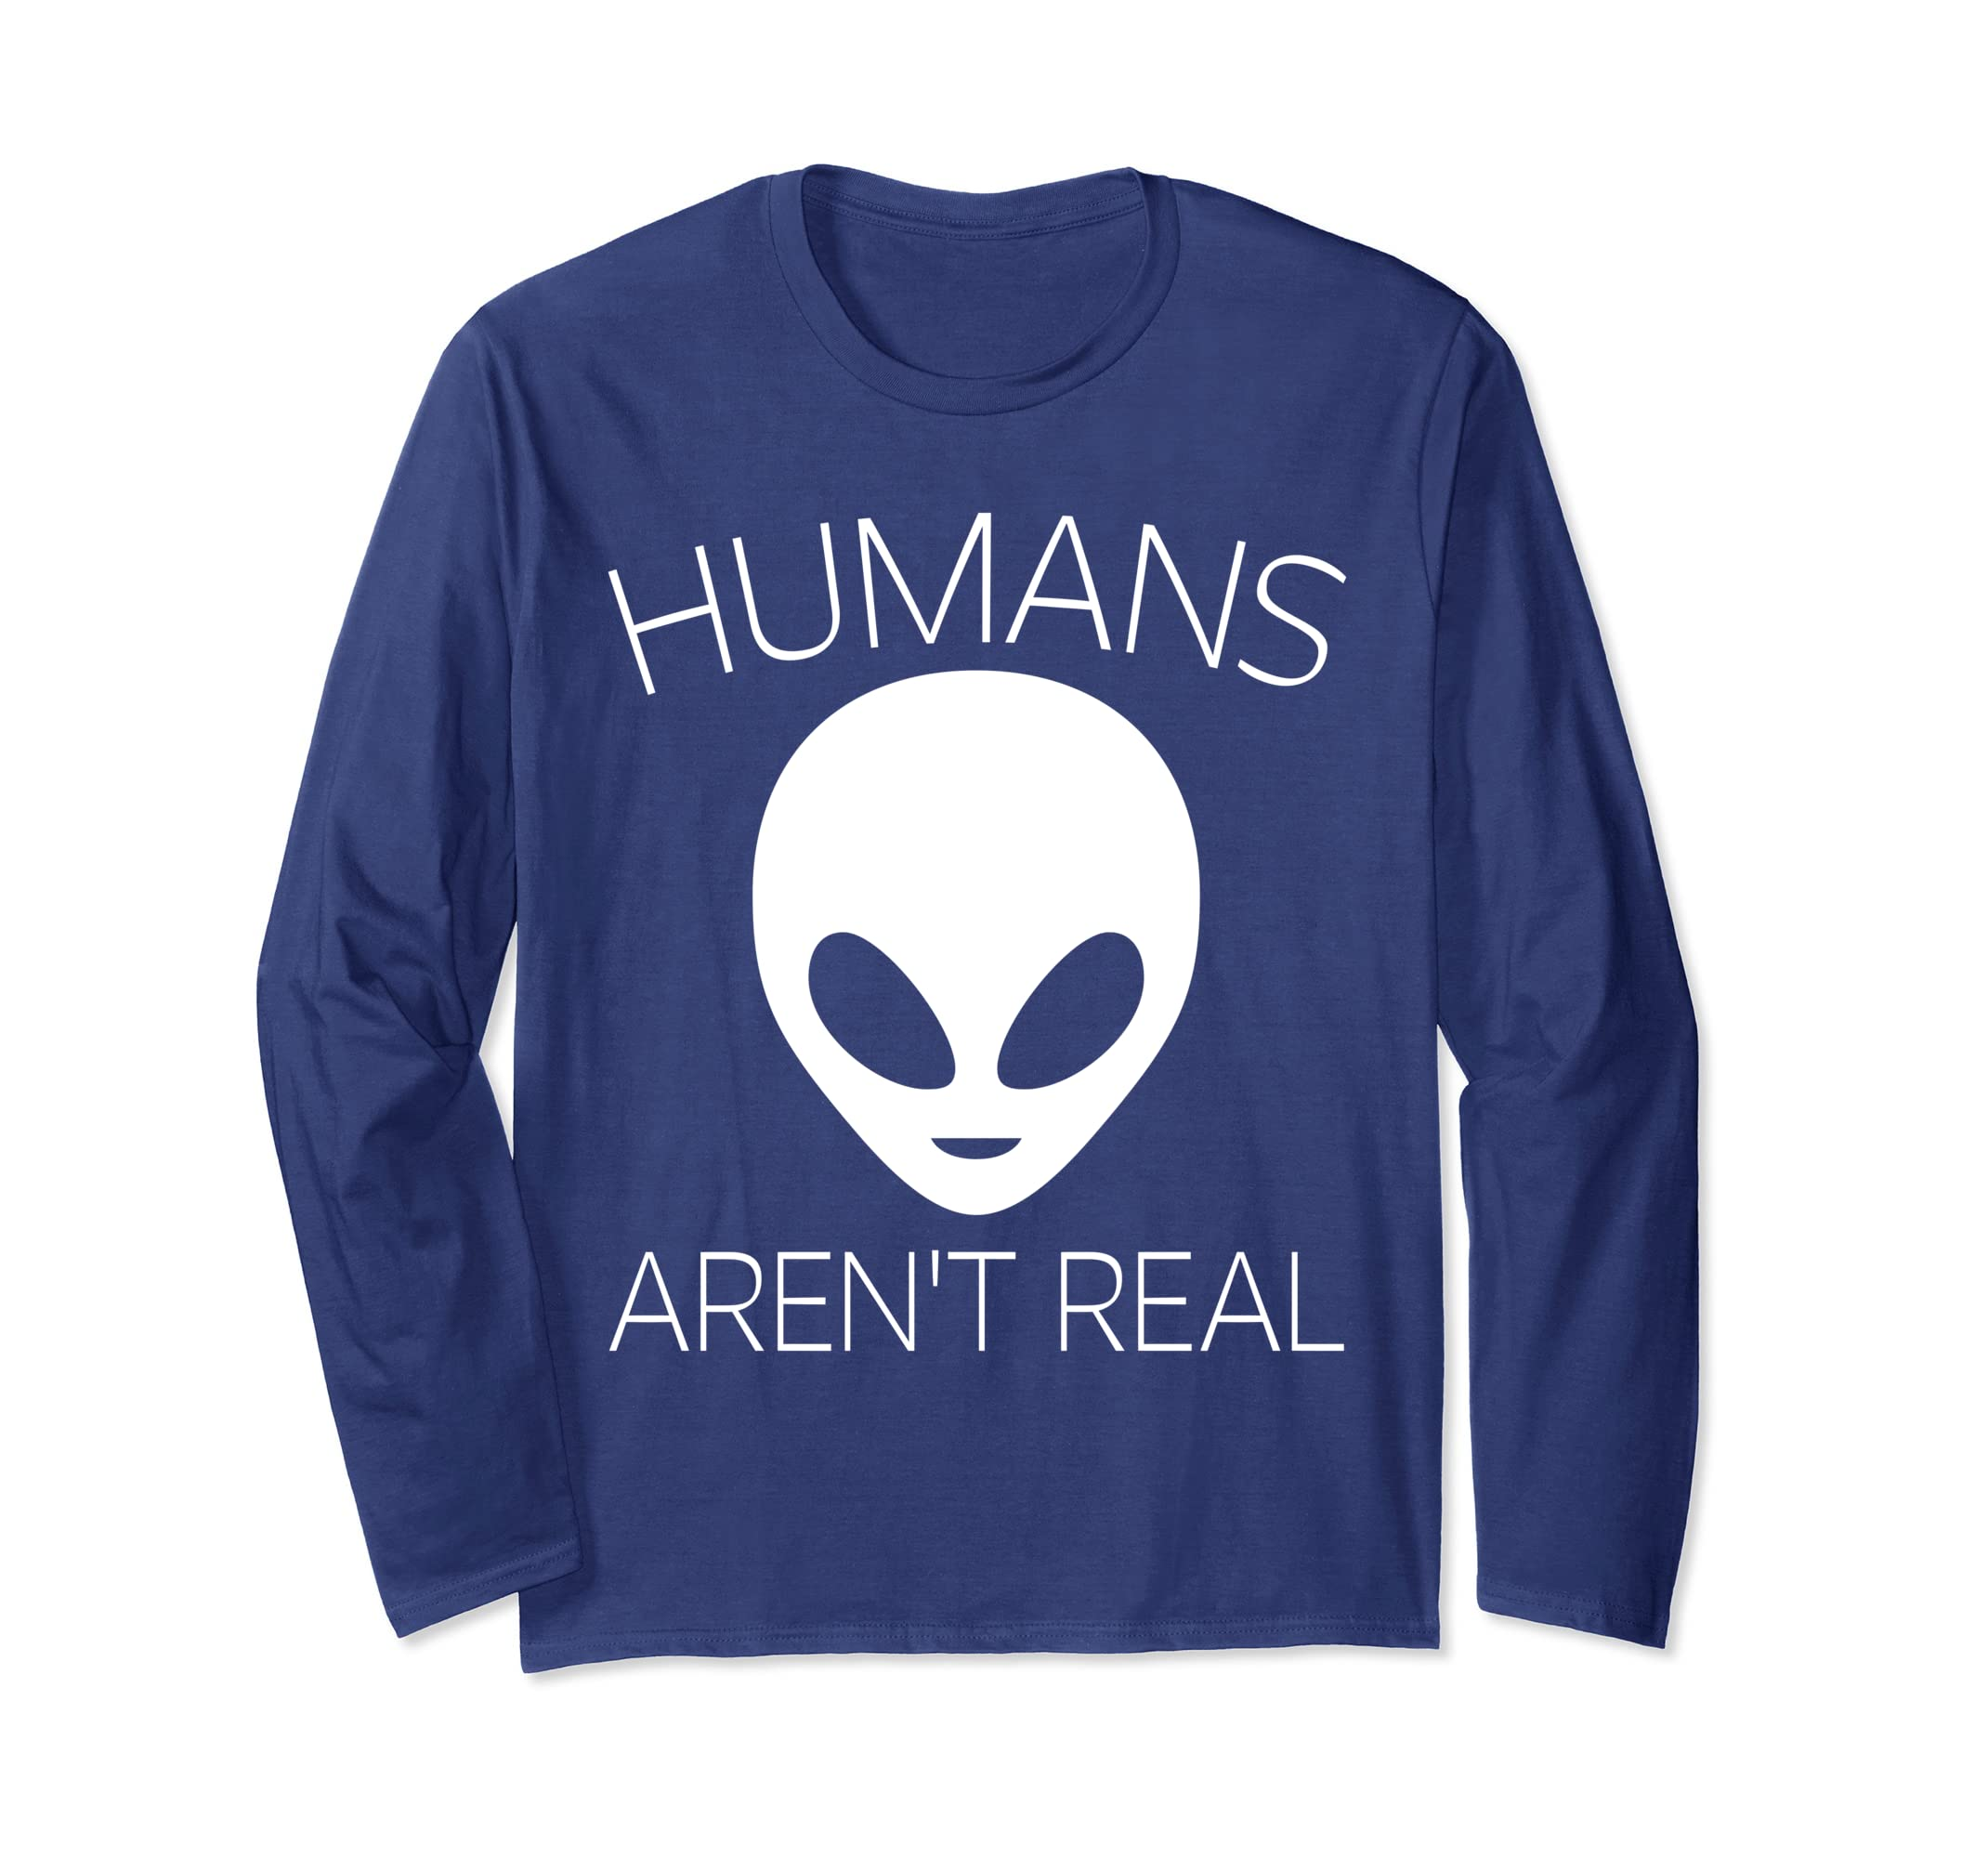 90cc91bdf9 Amazon.com: Humans Aren't Real T-Shirt - Funny Alien UFO Gift T-Shirt:  Clothing